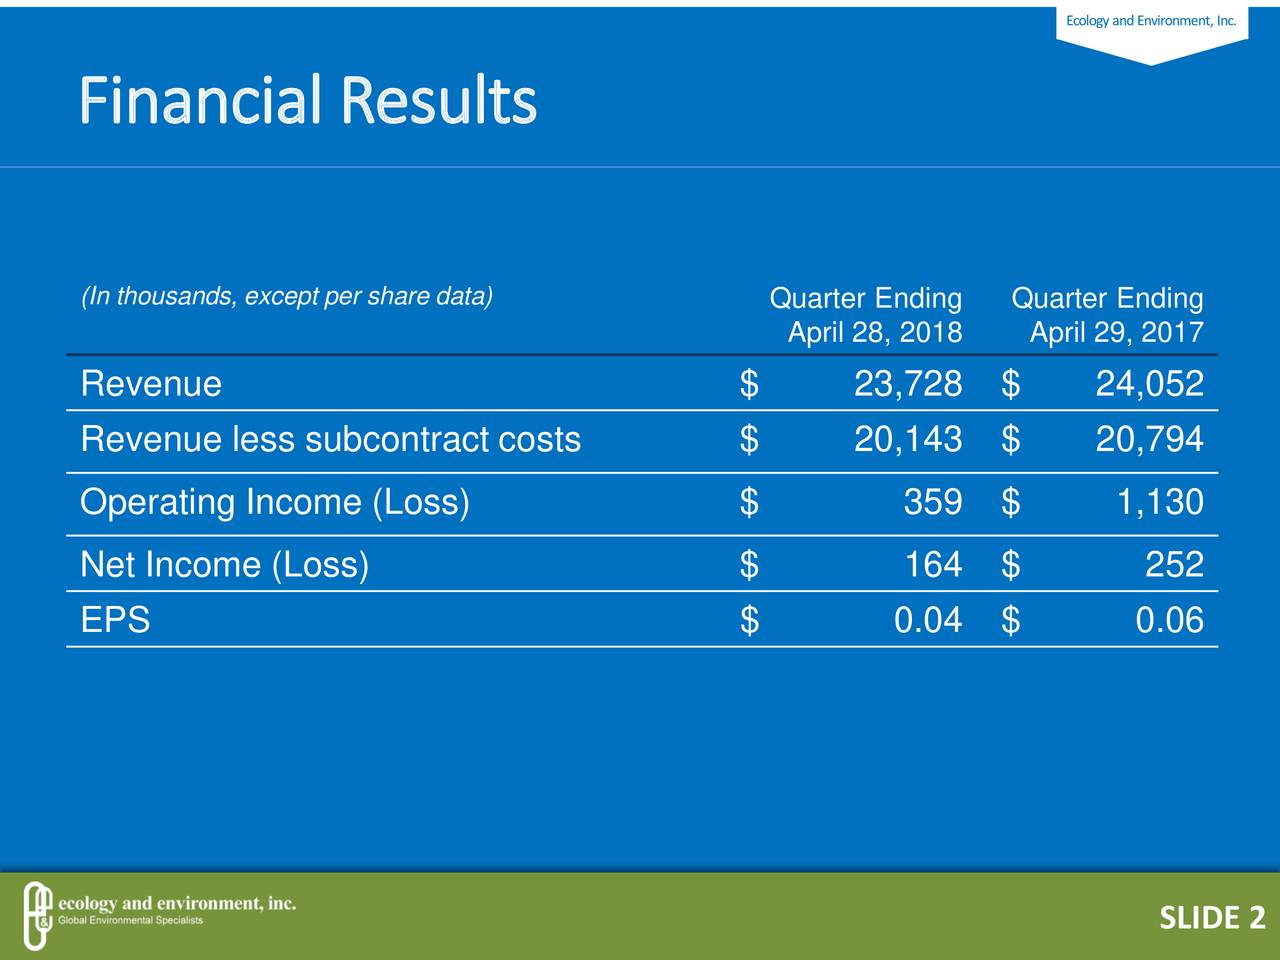 Financial Results (In thousands, except per share data) Quarter EndingQuarter Ending April 28, 2018April 29, 2017 Revenue $ 23,728 $ 24,052 Revenue less subcontract costs $ 20,143 $ 20,794 Operating Income (Loss) $ 359 $ 1,130 Net Income (Loss) $ 164 $ 252 EPS $ 0.04 $ 0.06 SLIDE 2